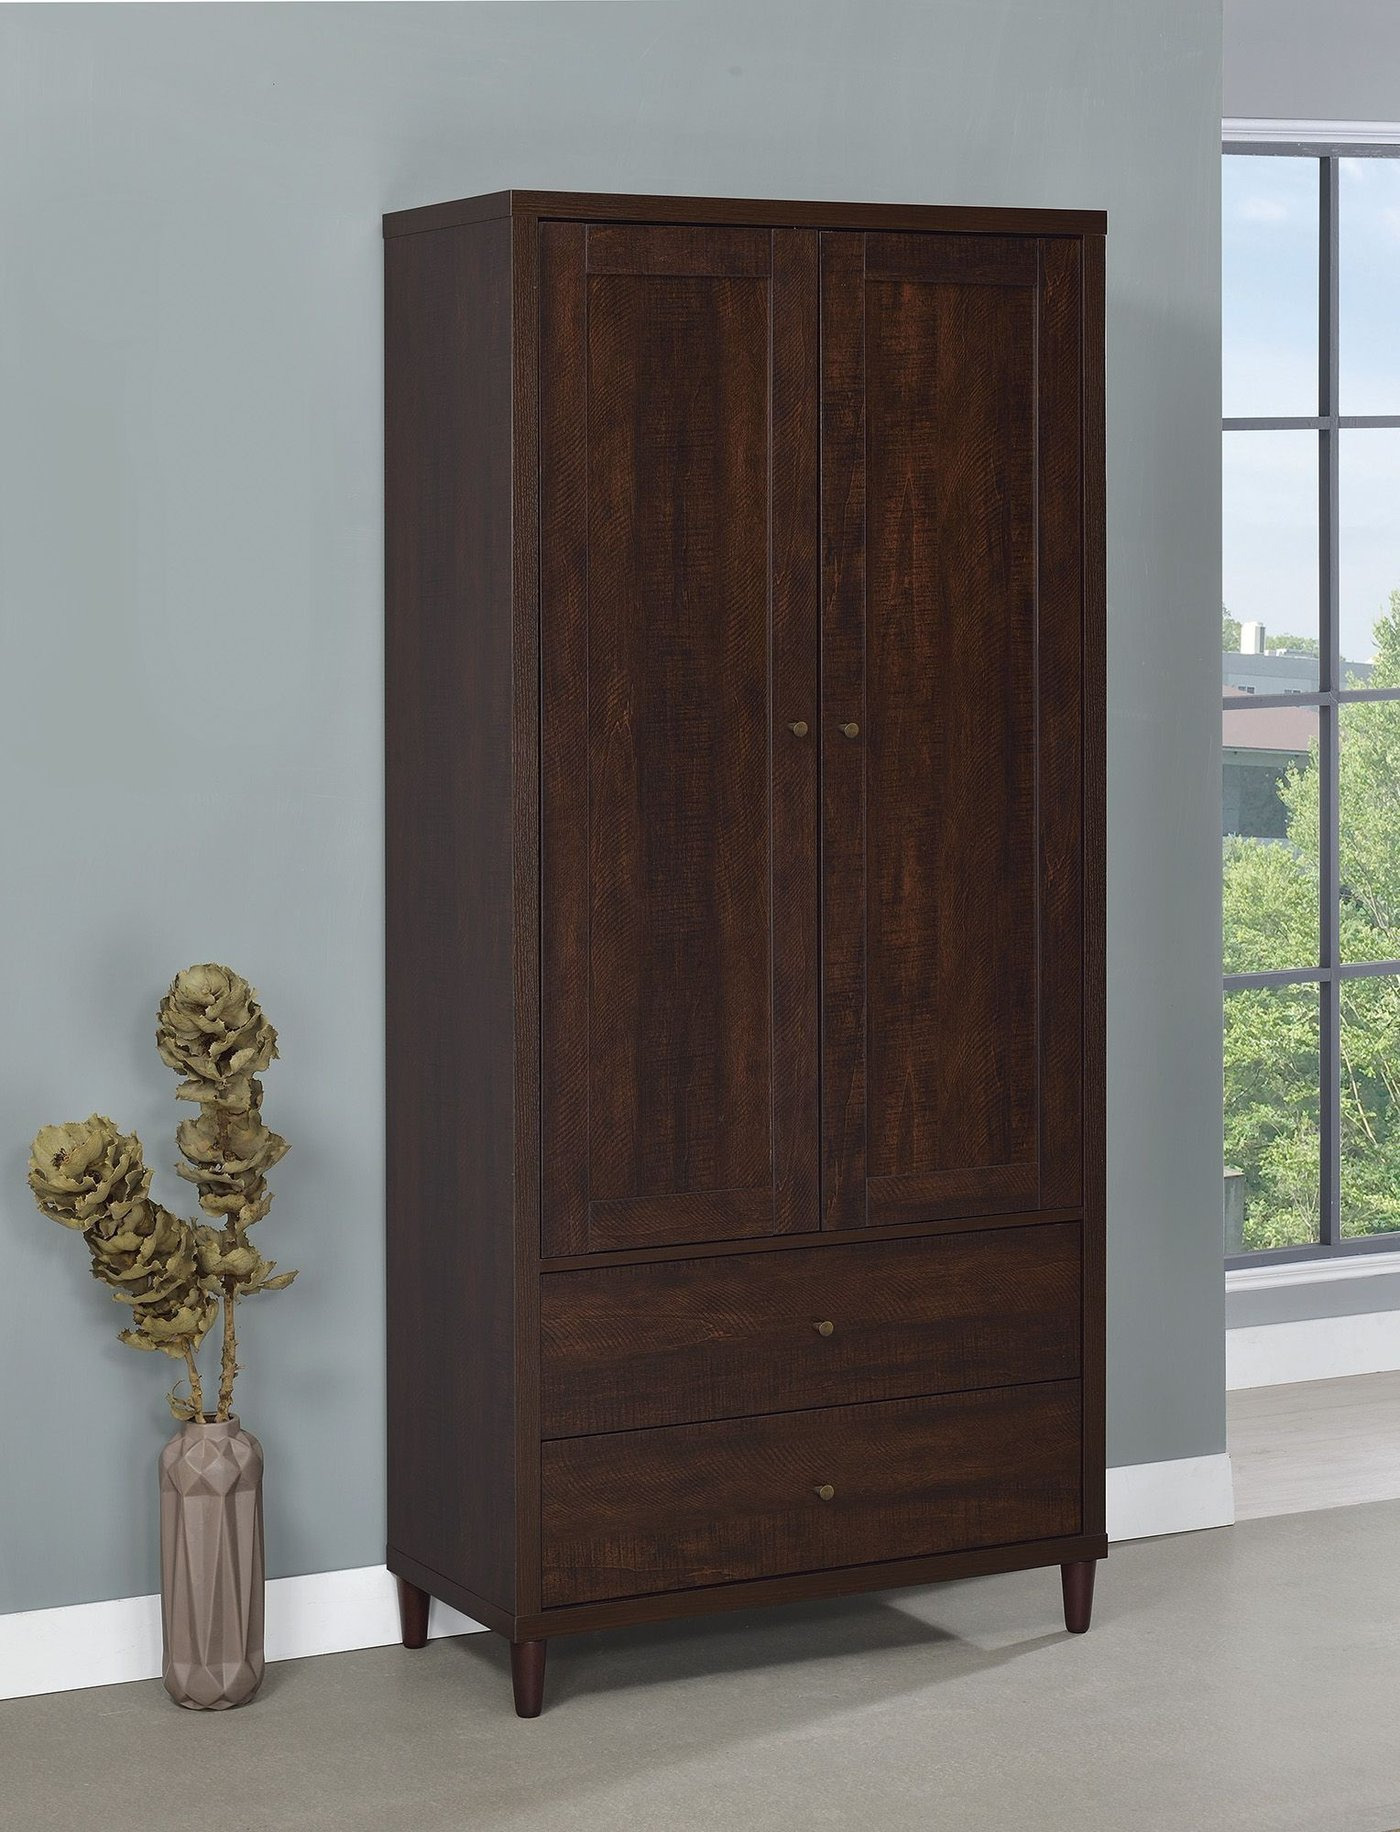 Accent Cabinet with Doors Luxury Coaster Accent Cabinets Brown Tall Accent Cabinet with Doors